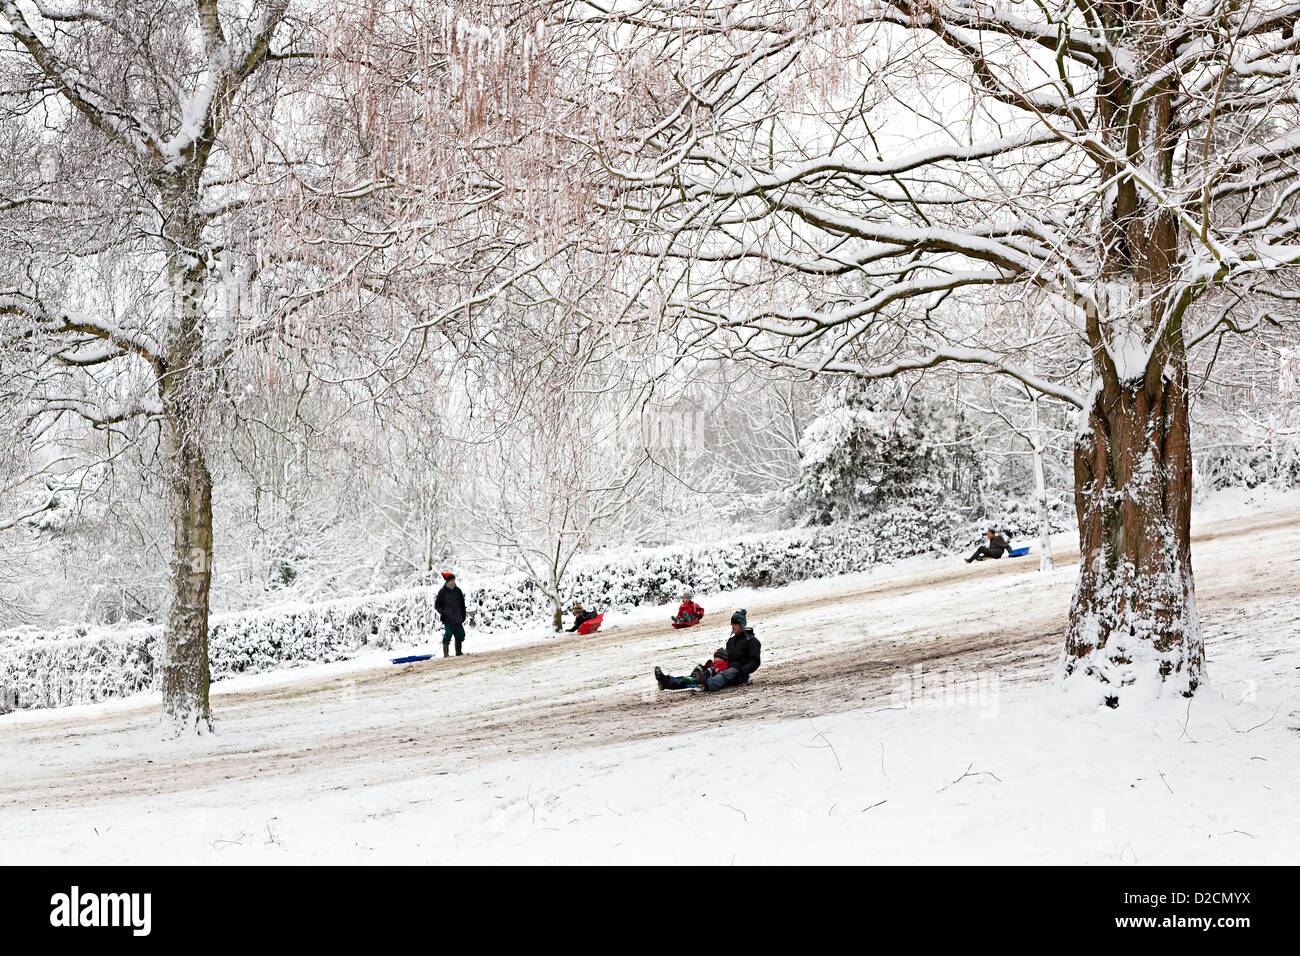 Children and adults sledging in public park Linda Vista Gardens, Abergavenny, Wales, UK - Stock Image